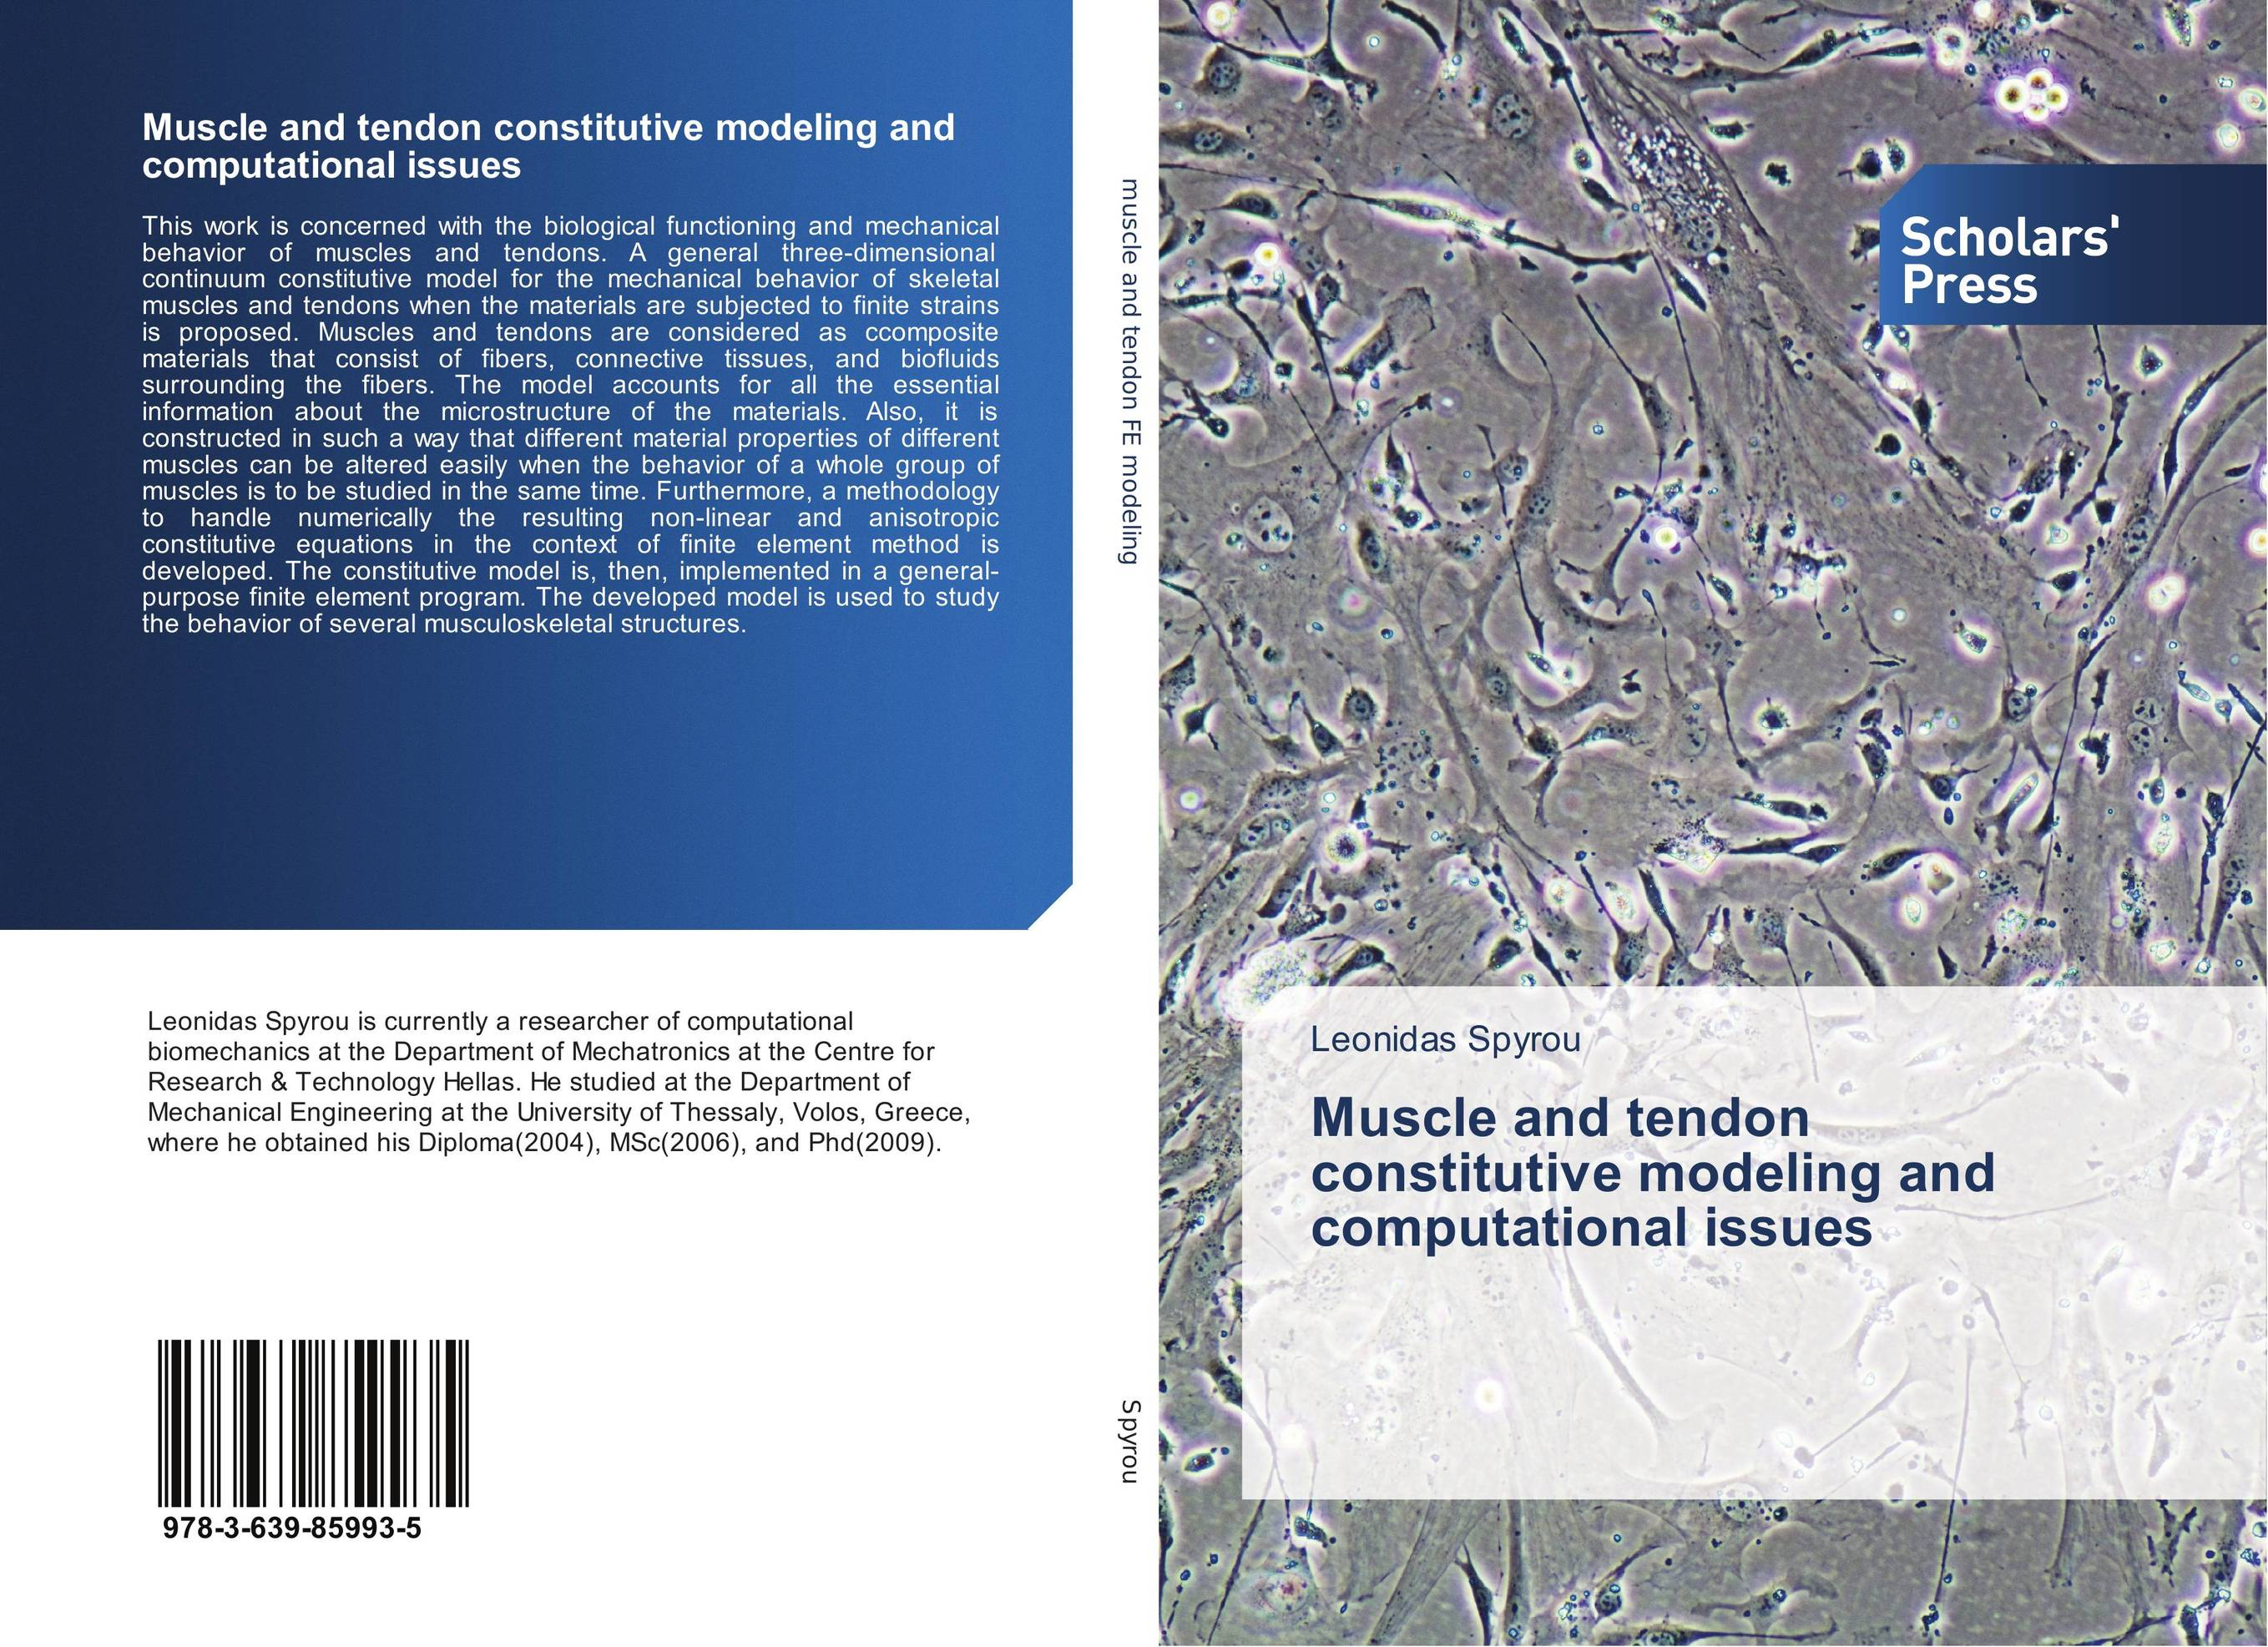 Muscle and tendon constitutive modeling and computational issues muscles of hand with main vessels and nerves model hand muscles model